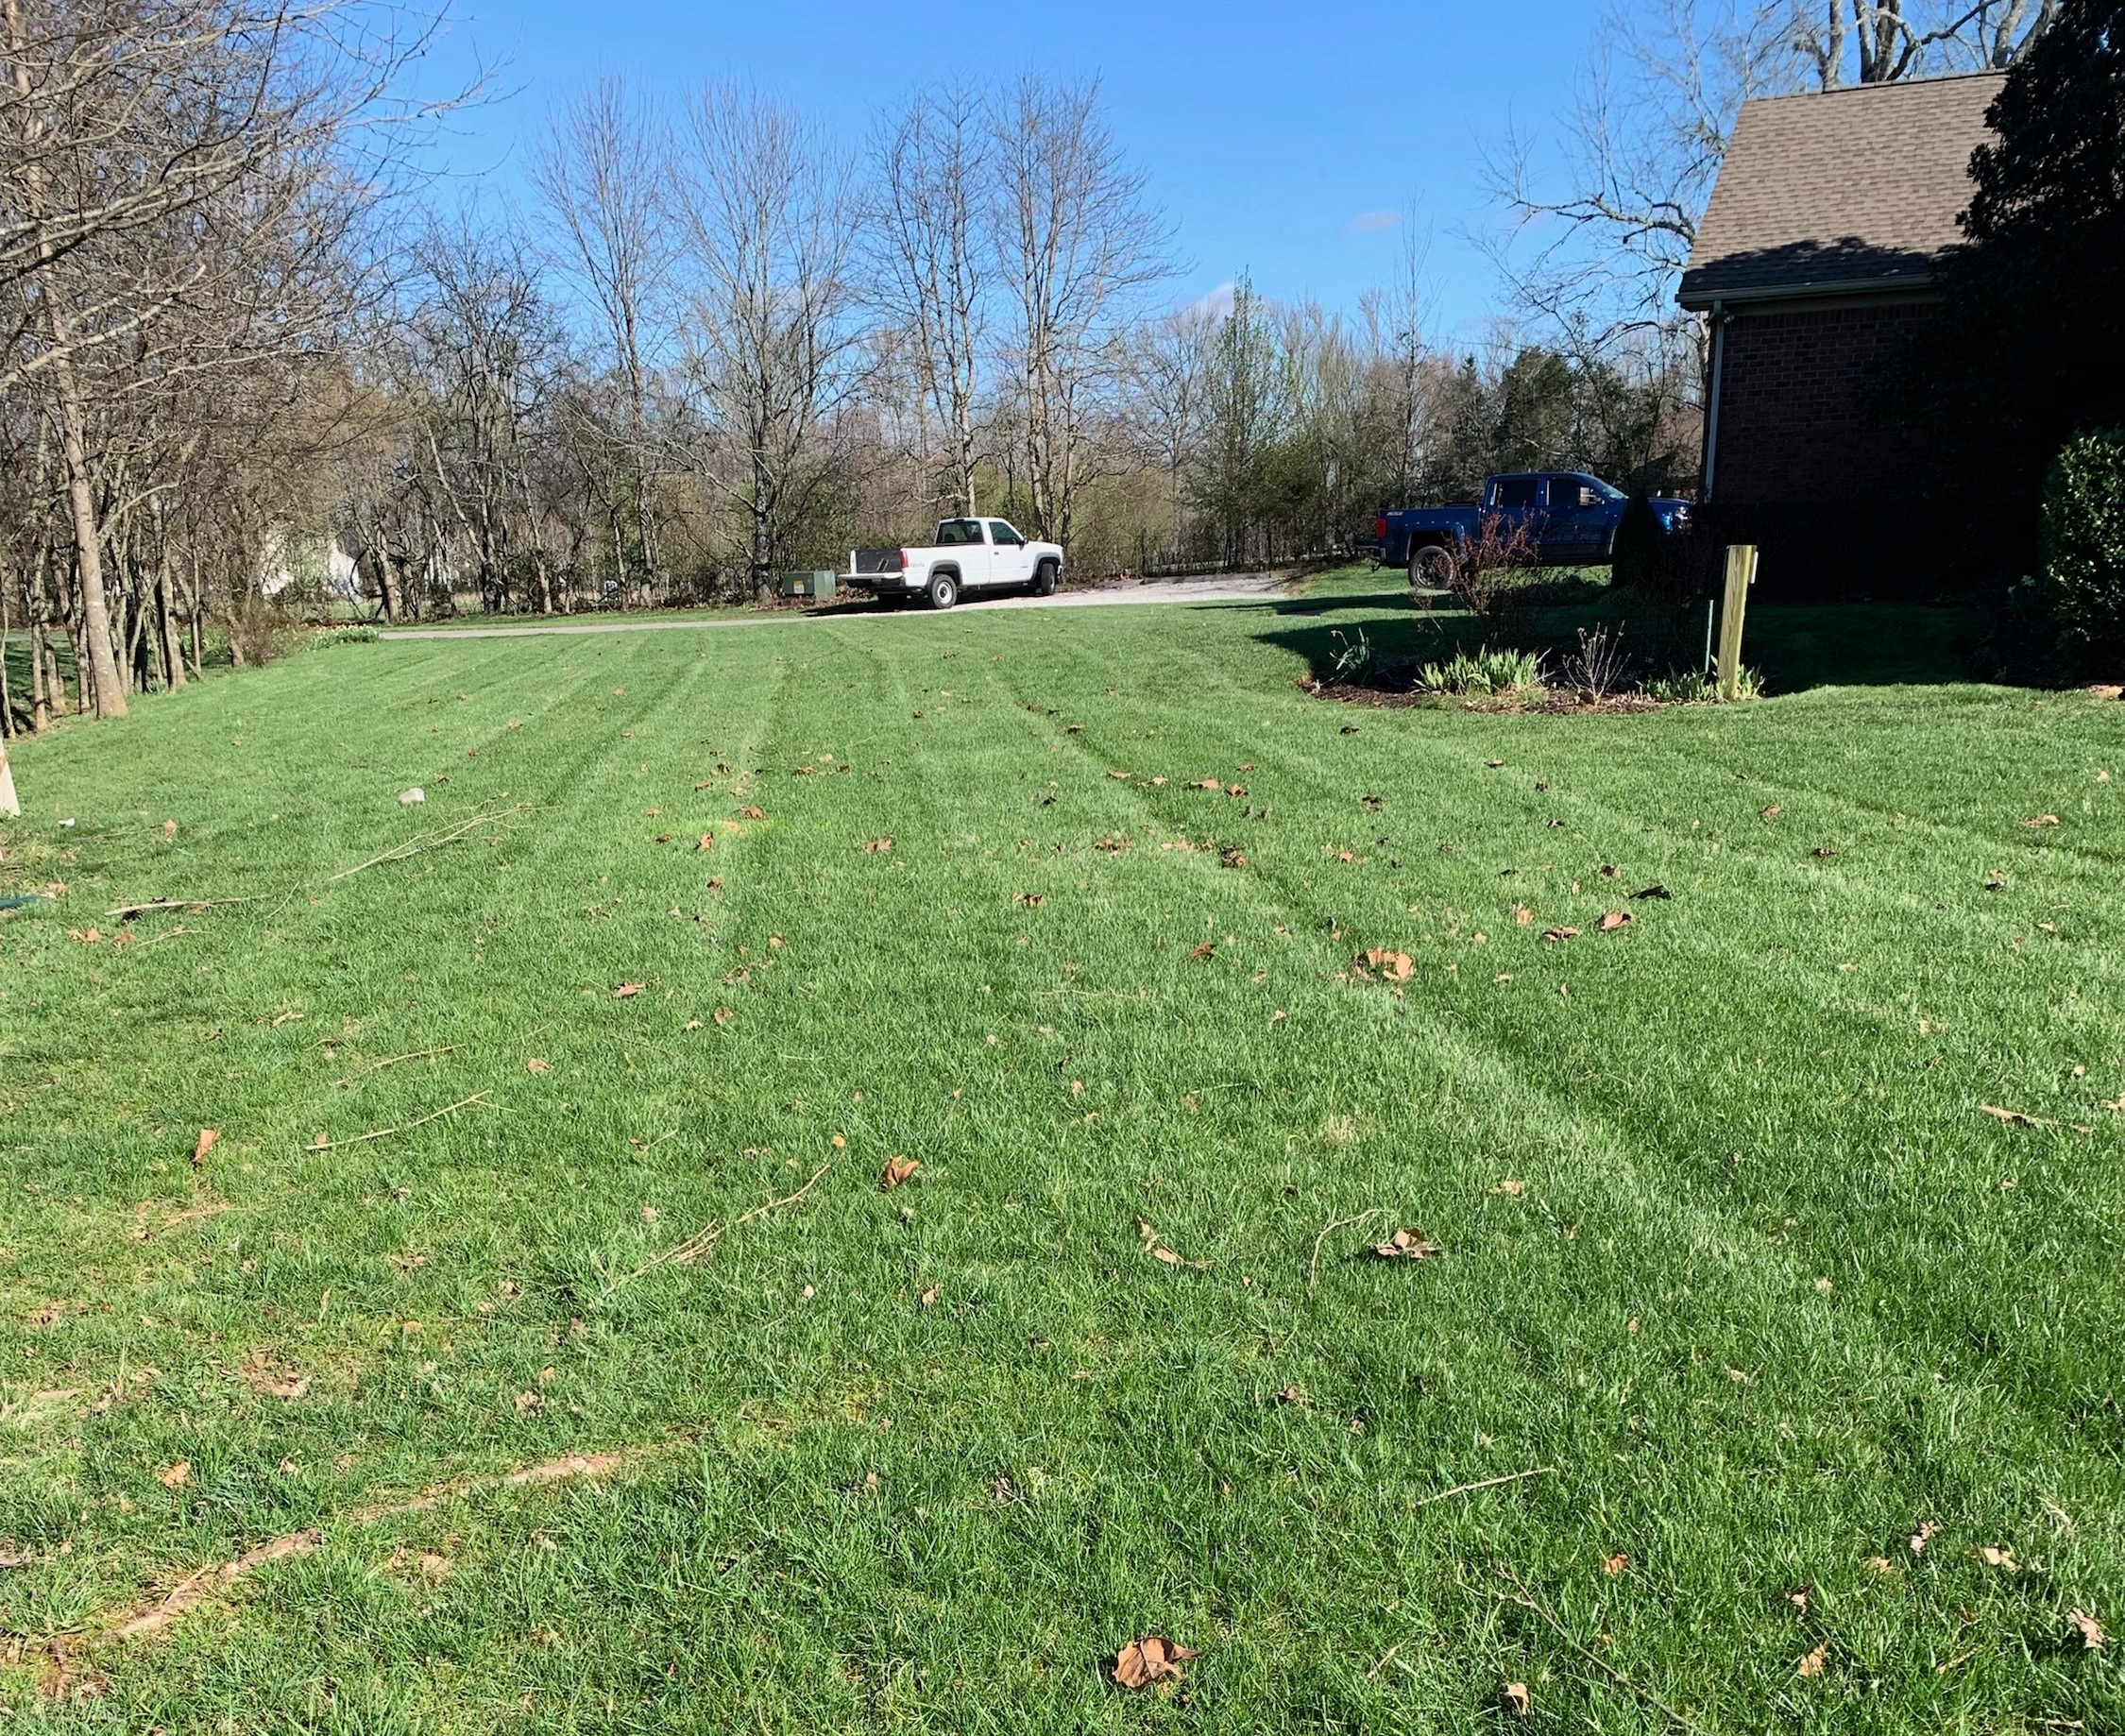 Treatment 3: - Weed Control and Air8 (April – May) Herbicides control weeds in lawn. Air8 is a liquid aerator that alleviates compaction and promotes deep root growth.